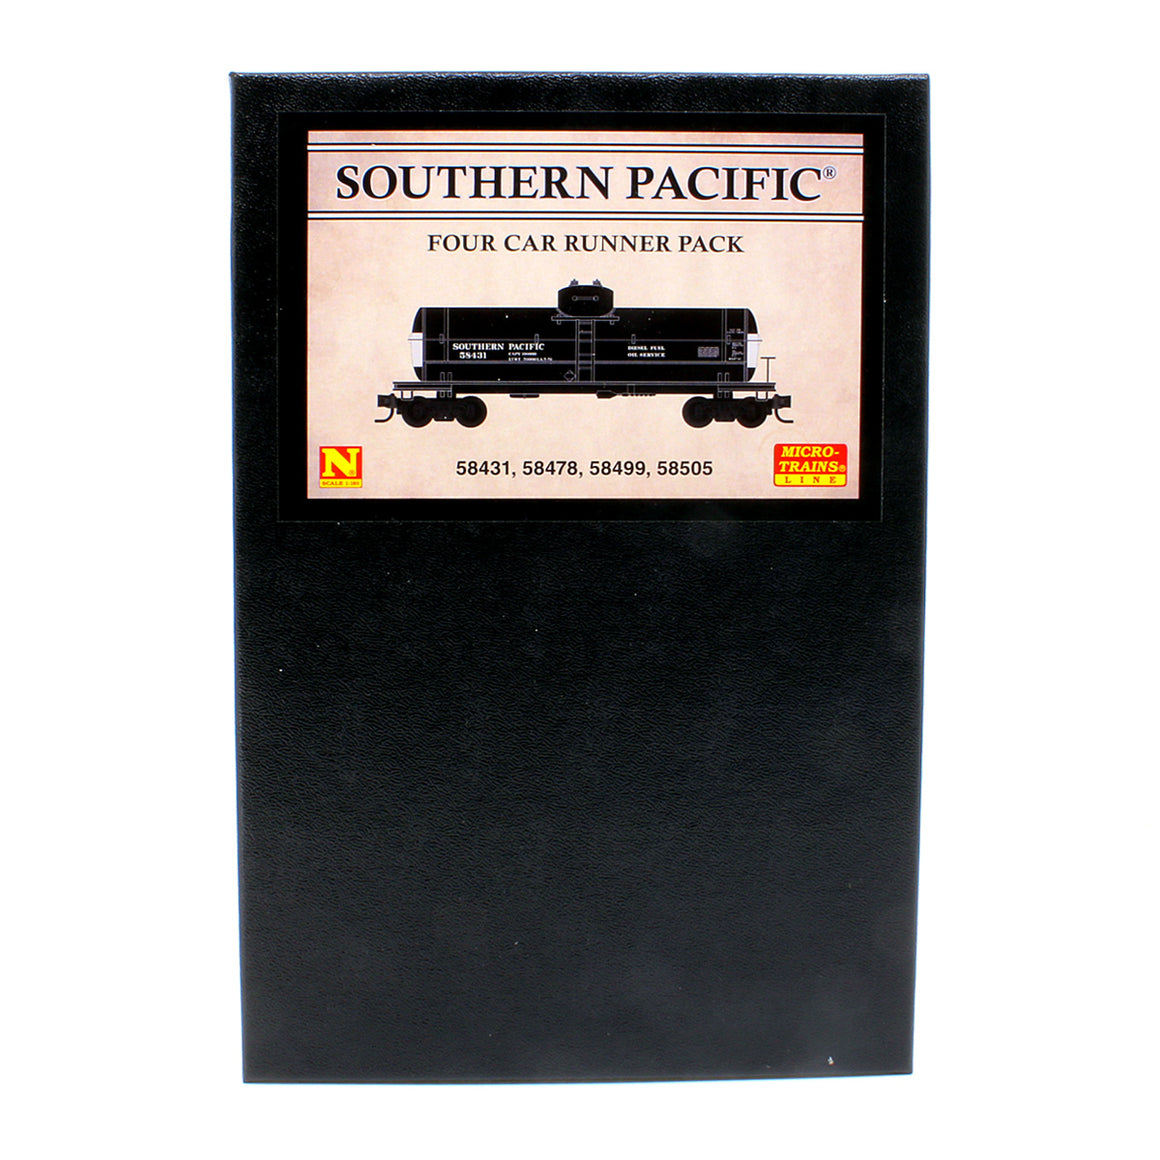 N Scale: 39' Single Dome Tank Car - Southern Pacific 'Diesel Fuel Service' - 4 Pack